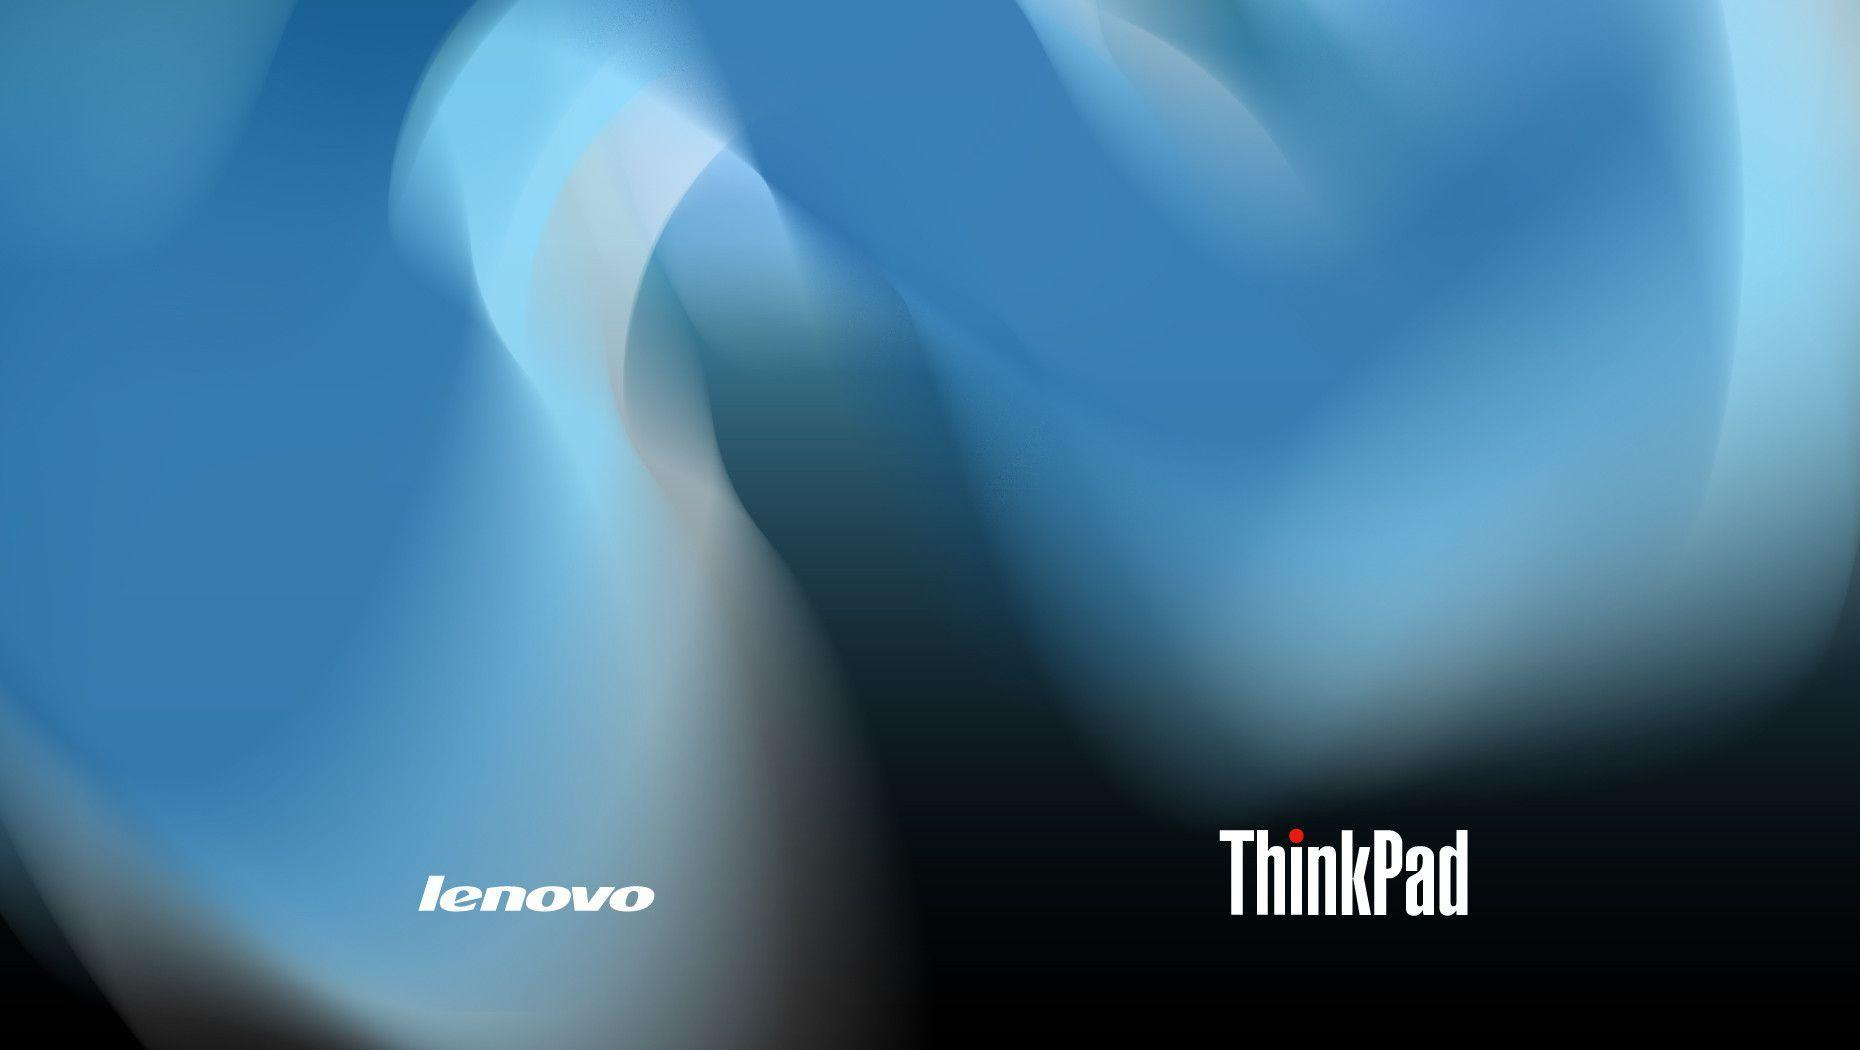 thinkpad wallpapers wallpaper - photo #13